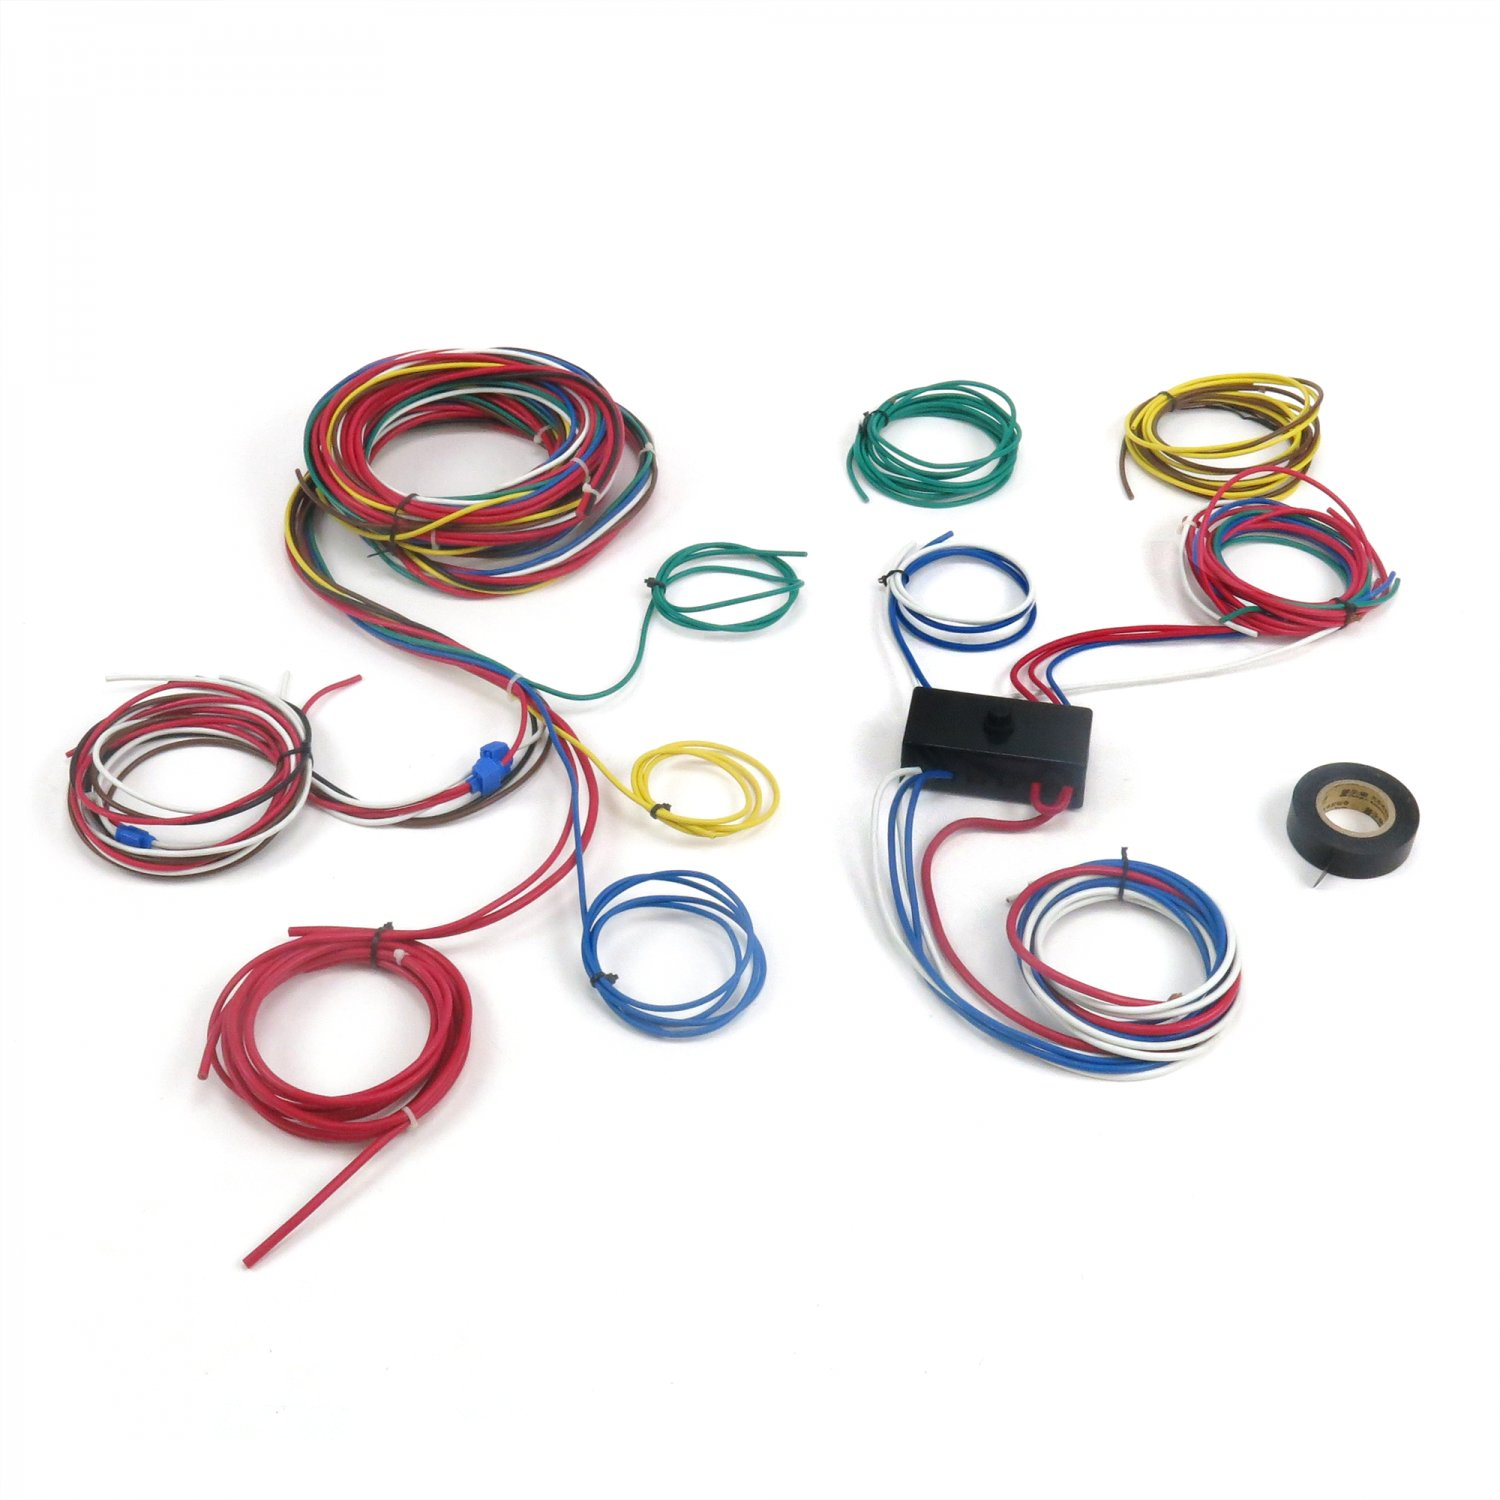 1500 dune buggy universal wiring harness w fuse box fits empi 9466 vw VW Wiring Harness Kits at soozxer.org